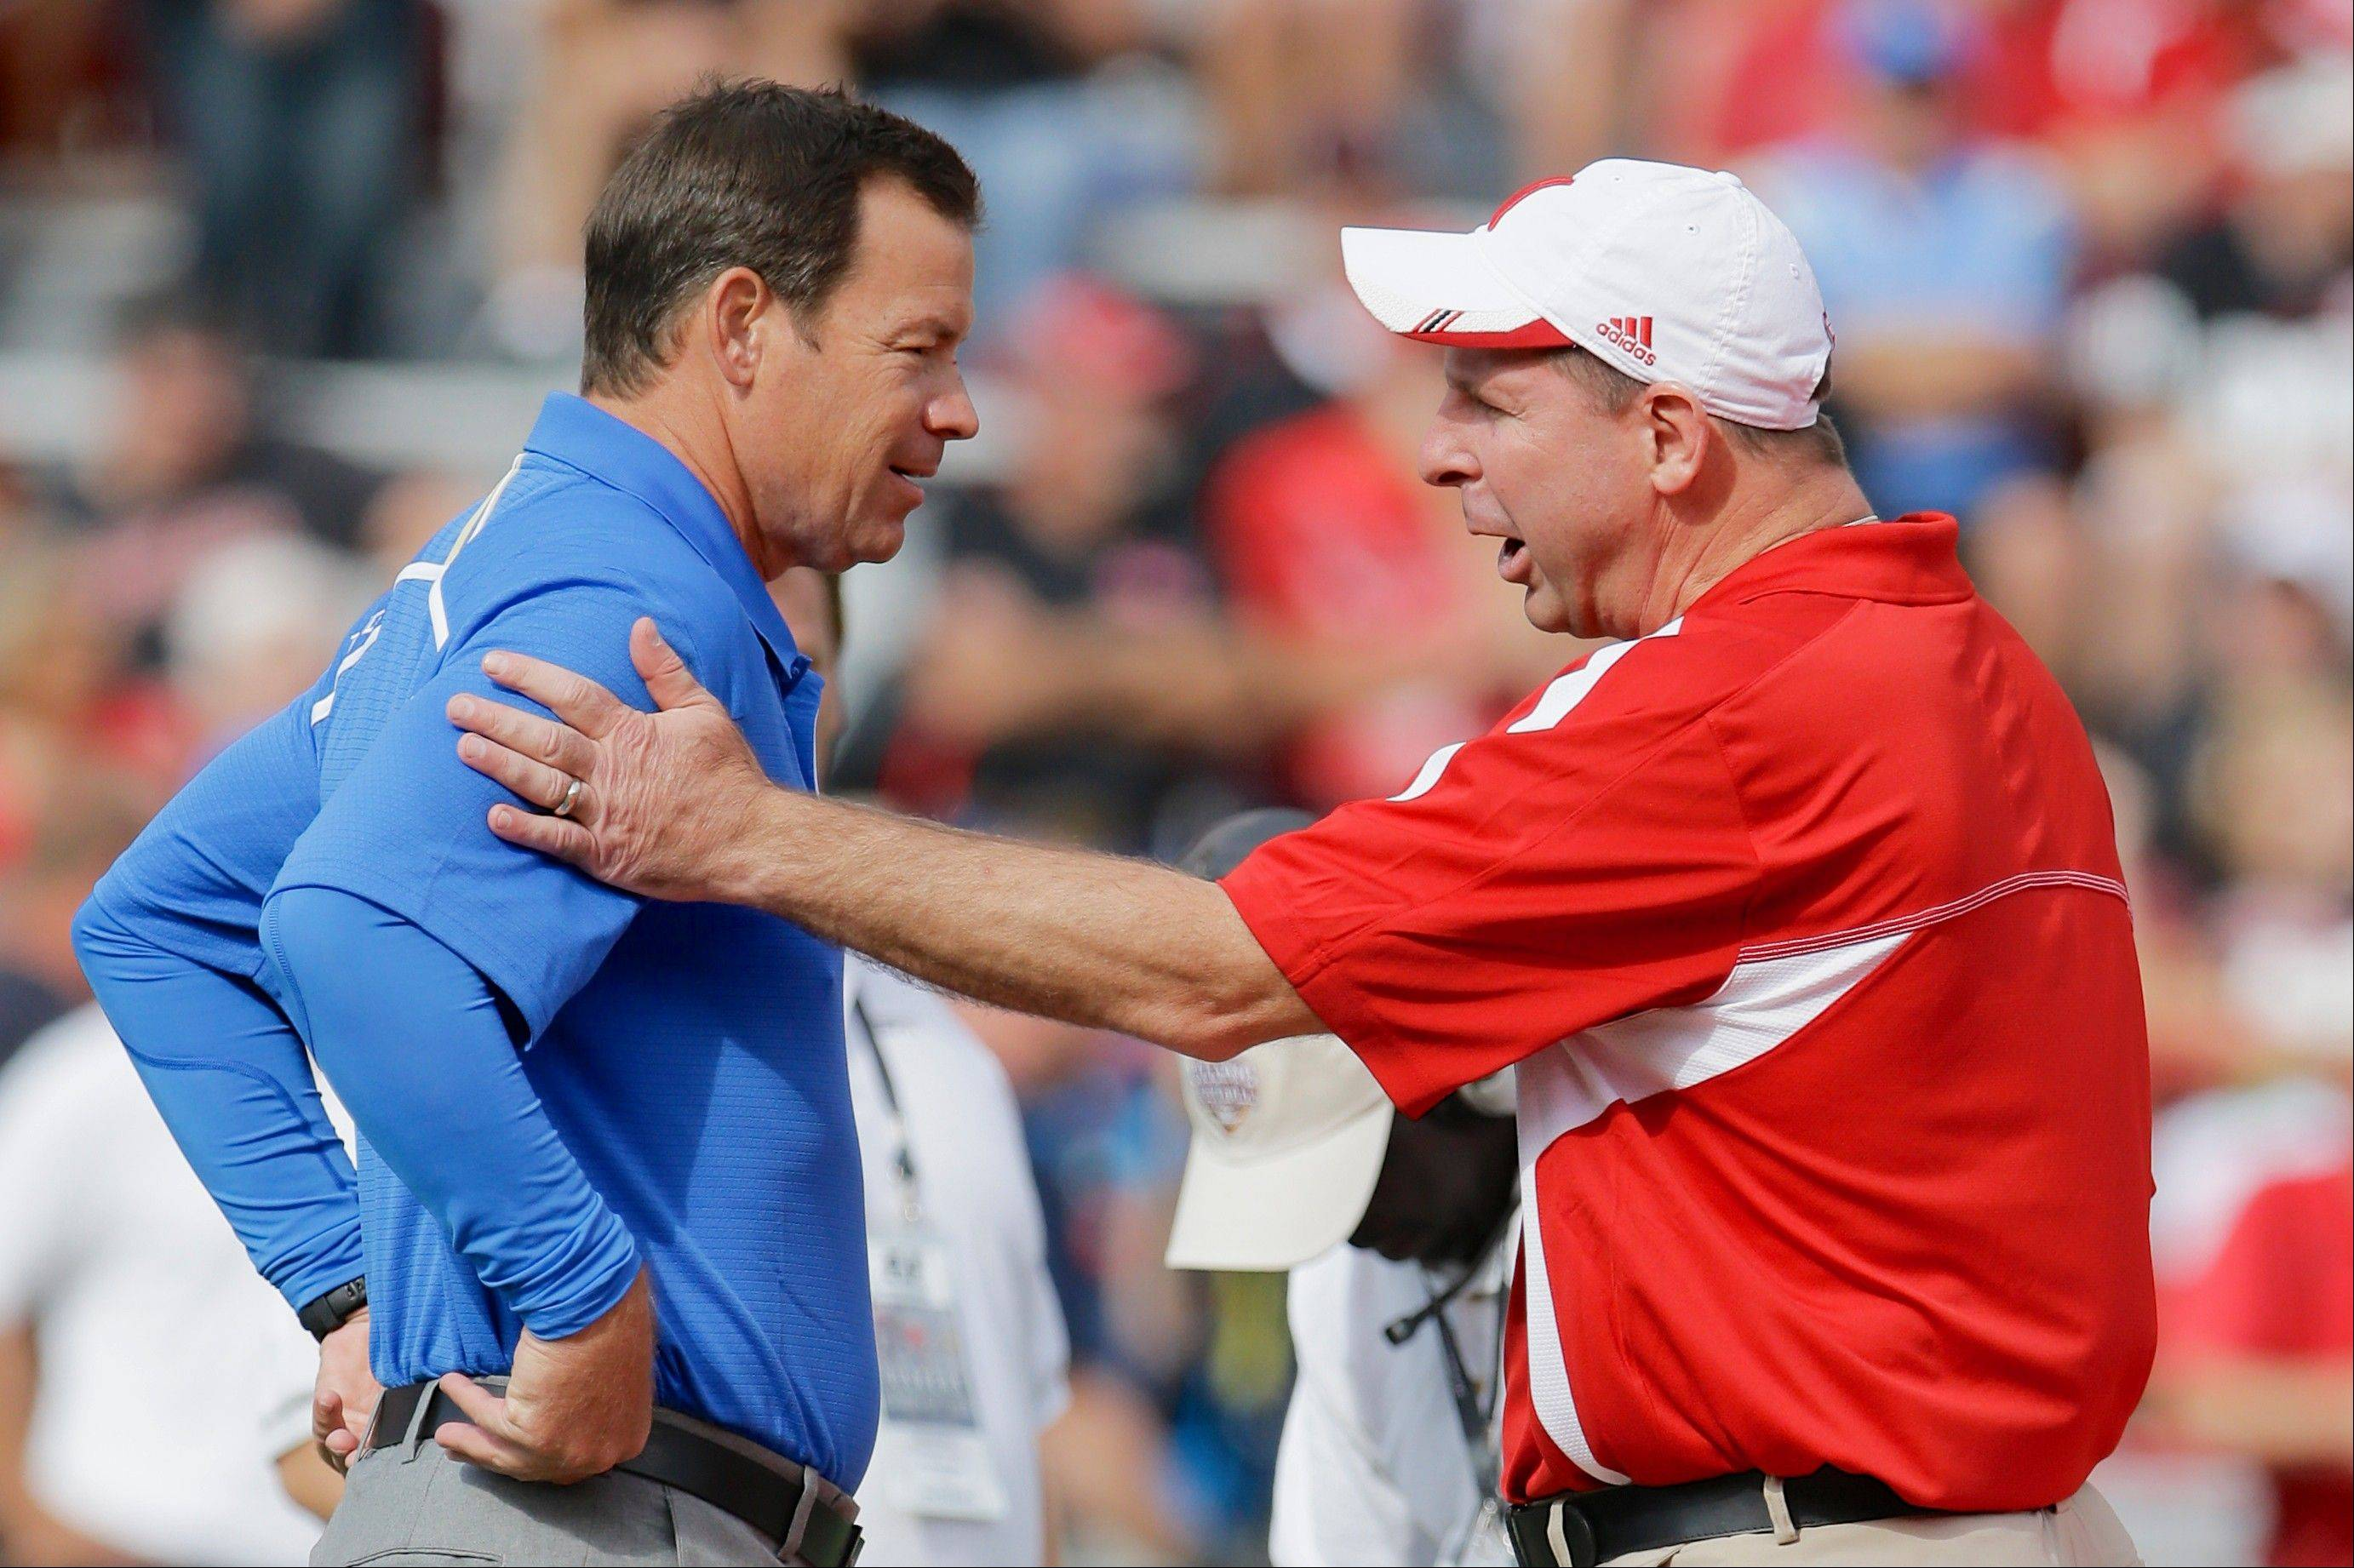 UCLA head coach Jim Mora, left, and Nebraska head coach Bo Pelini meet during warmups prior to an NCAA college football game in Lincoln, Neb., Saturday, Sept. 14, 2013. (AP Photo/Nati Harnik)